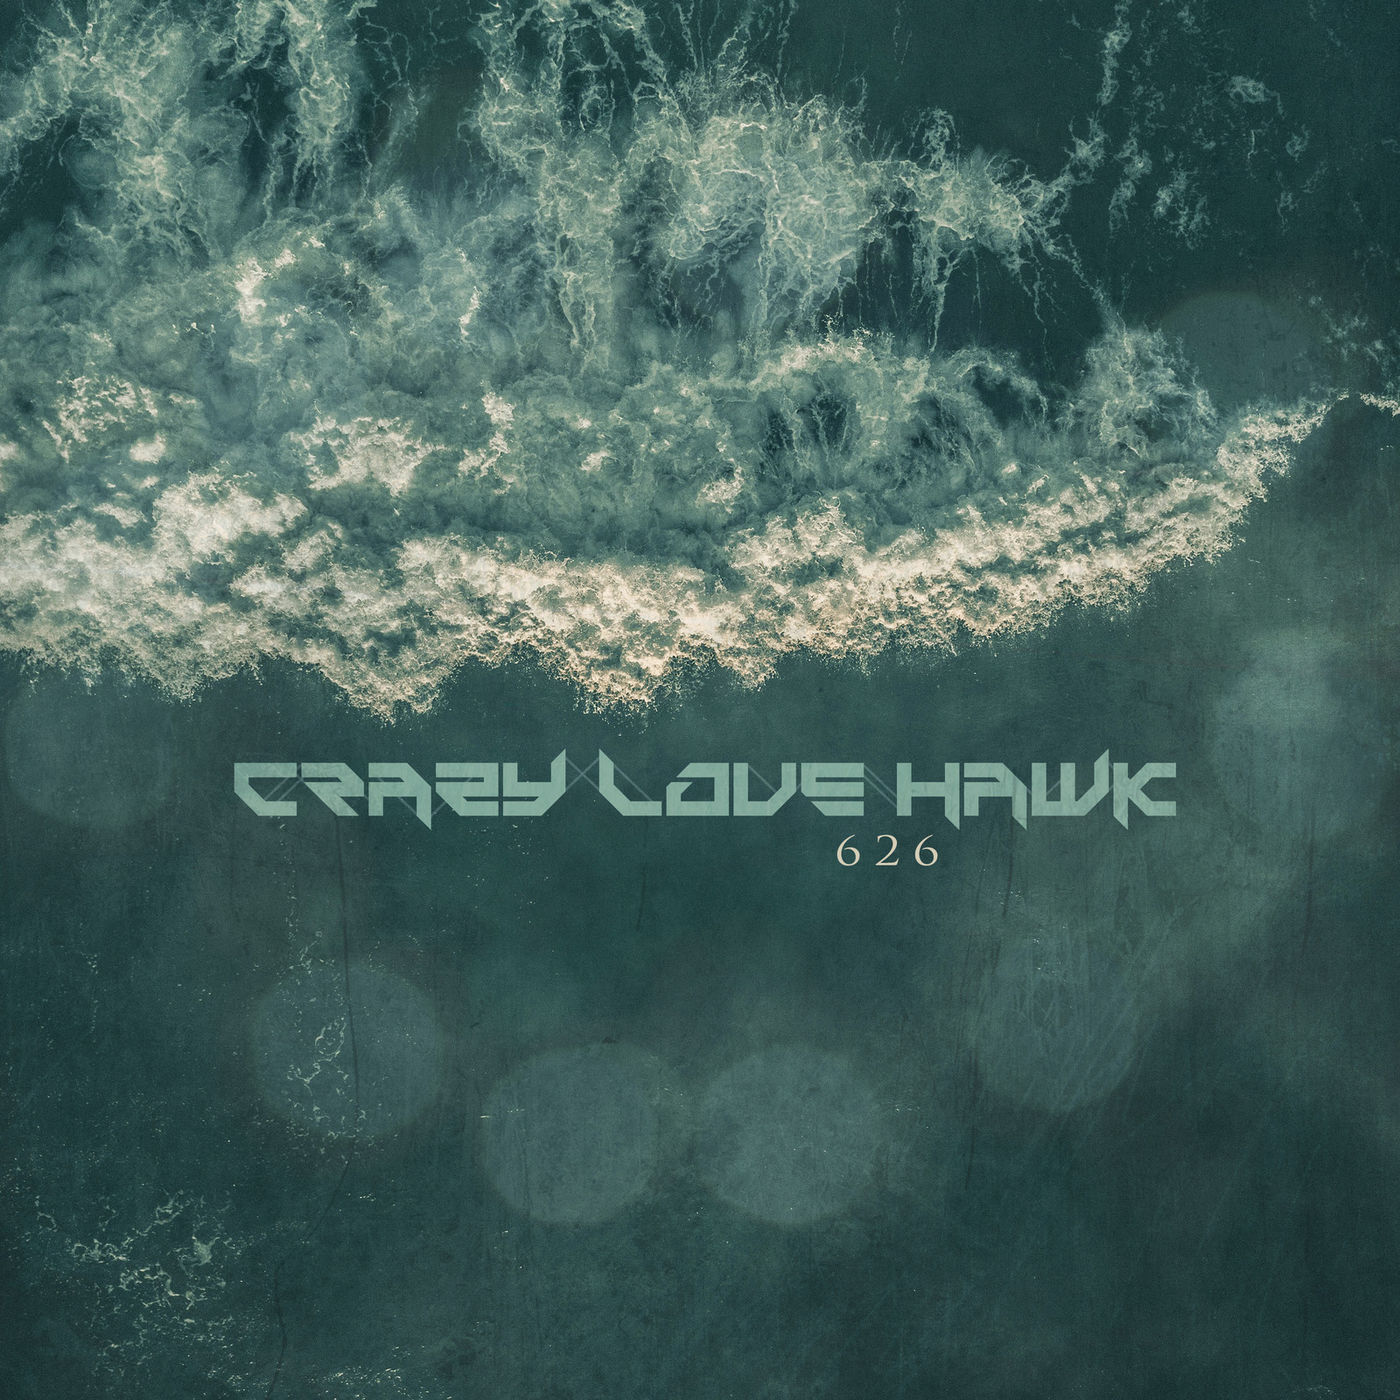 Crazy Love Hawk - 626 [single] (2020)